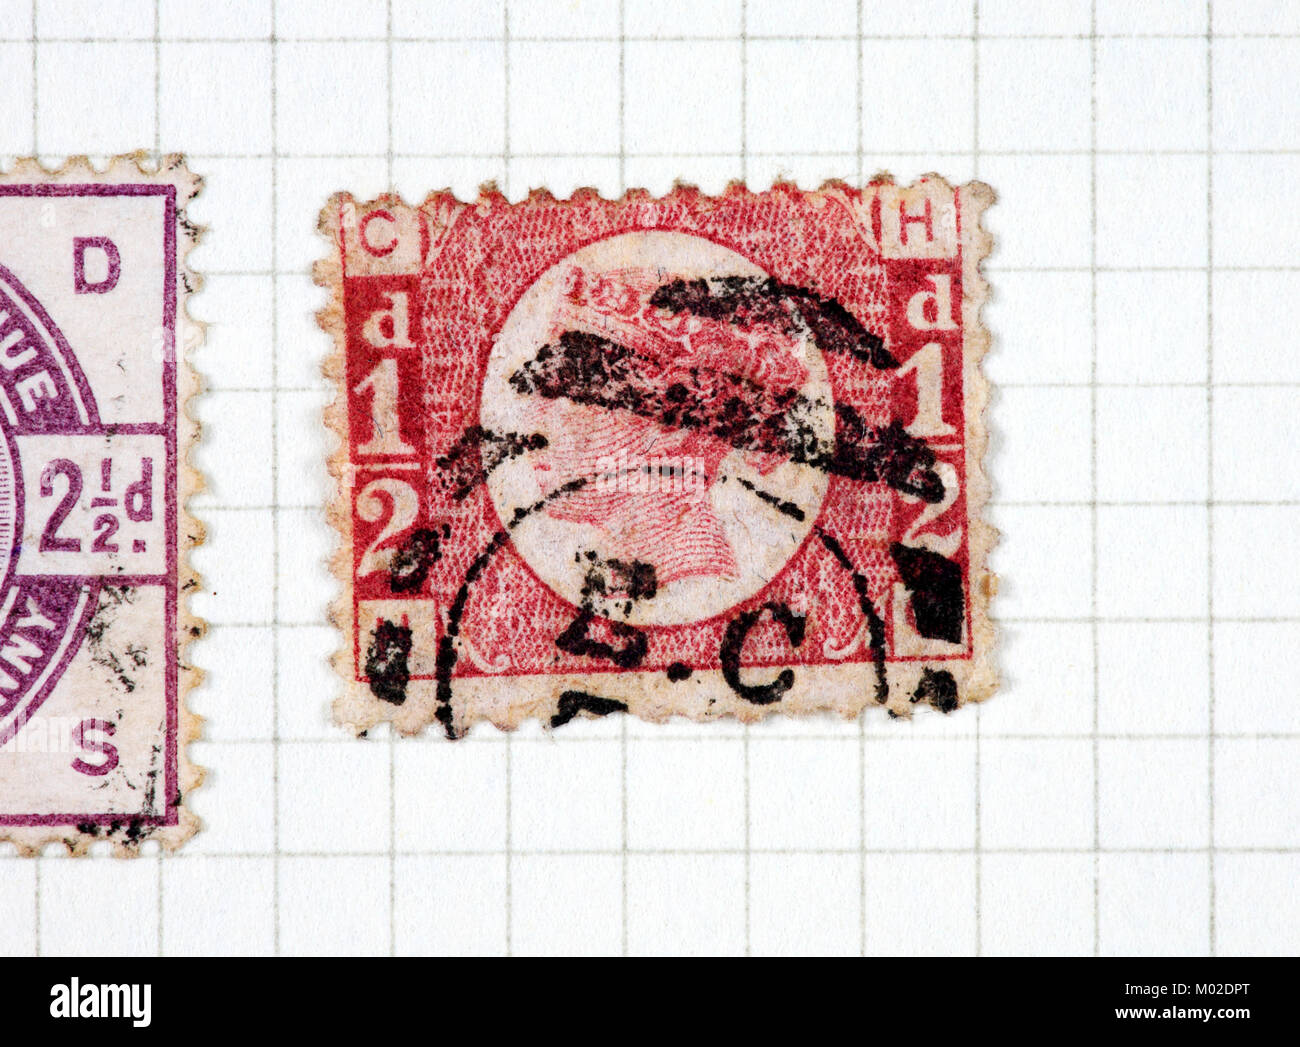 A used Queen Victoria reign 1/2d stamp of 1858-70 issue. - Stock Image